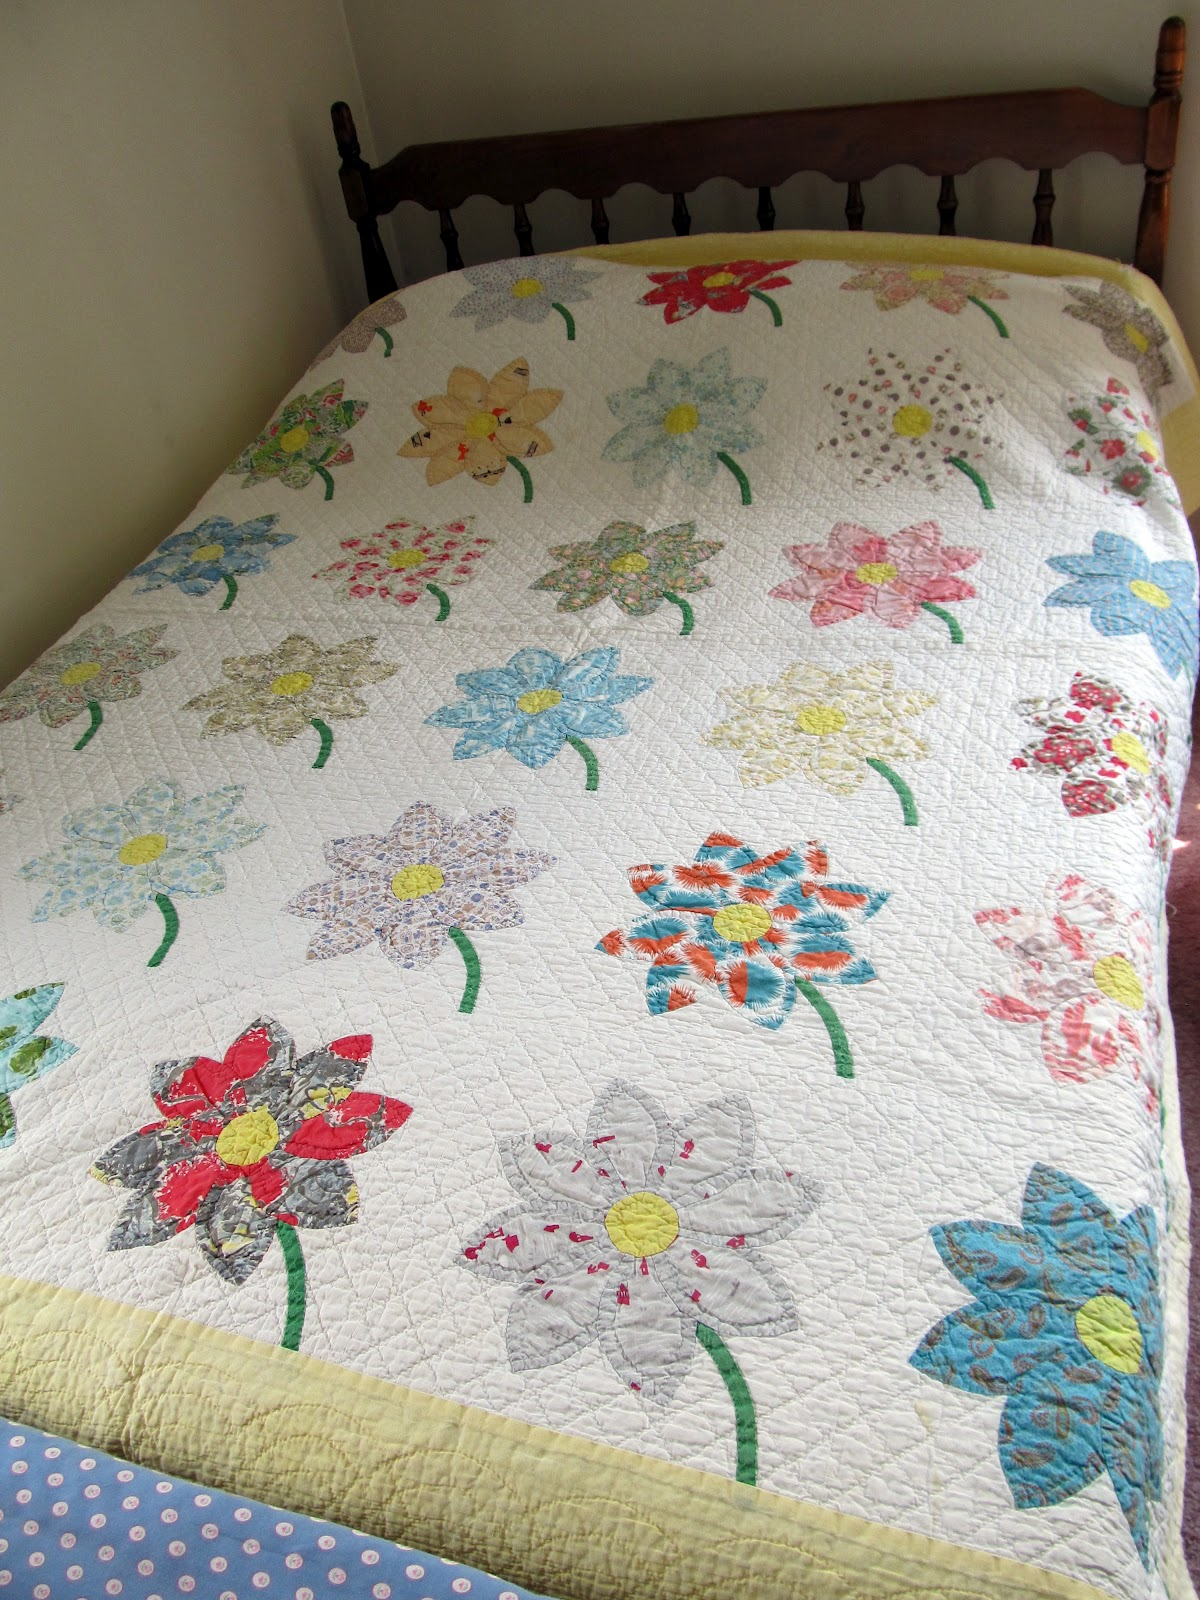 Jayne's Quilting Room: Grandma's Quilts : daisy quilts - Adamdwight.com